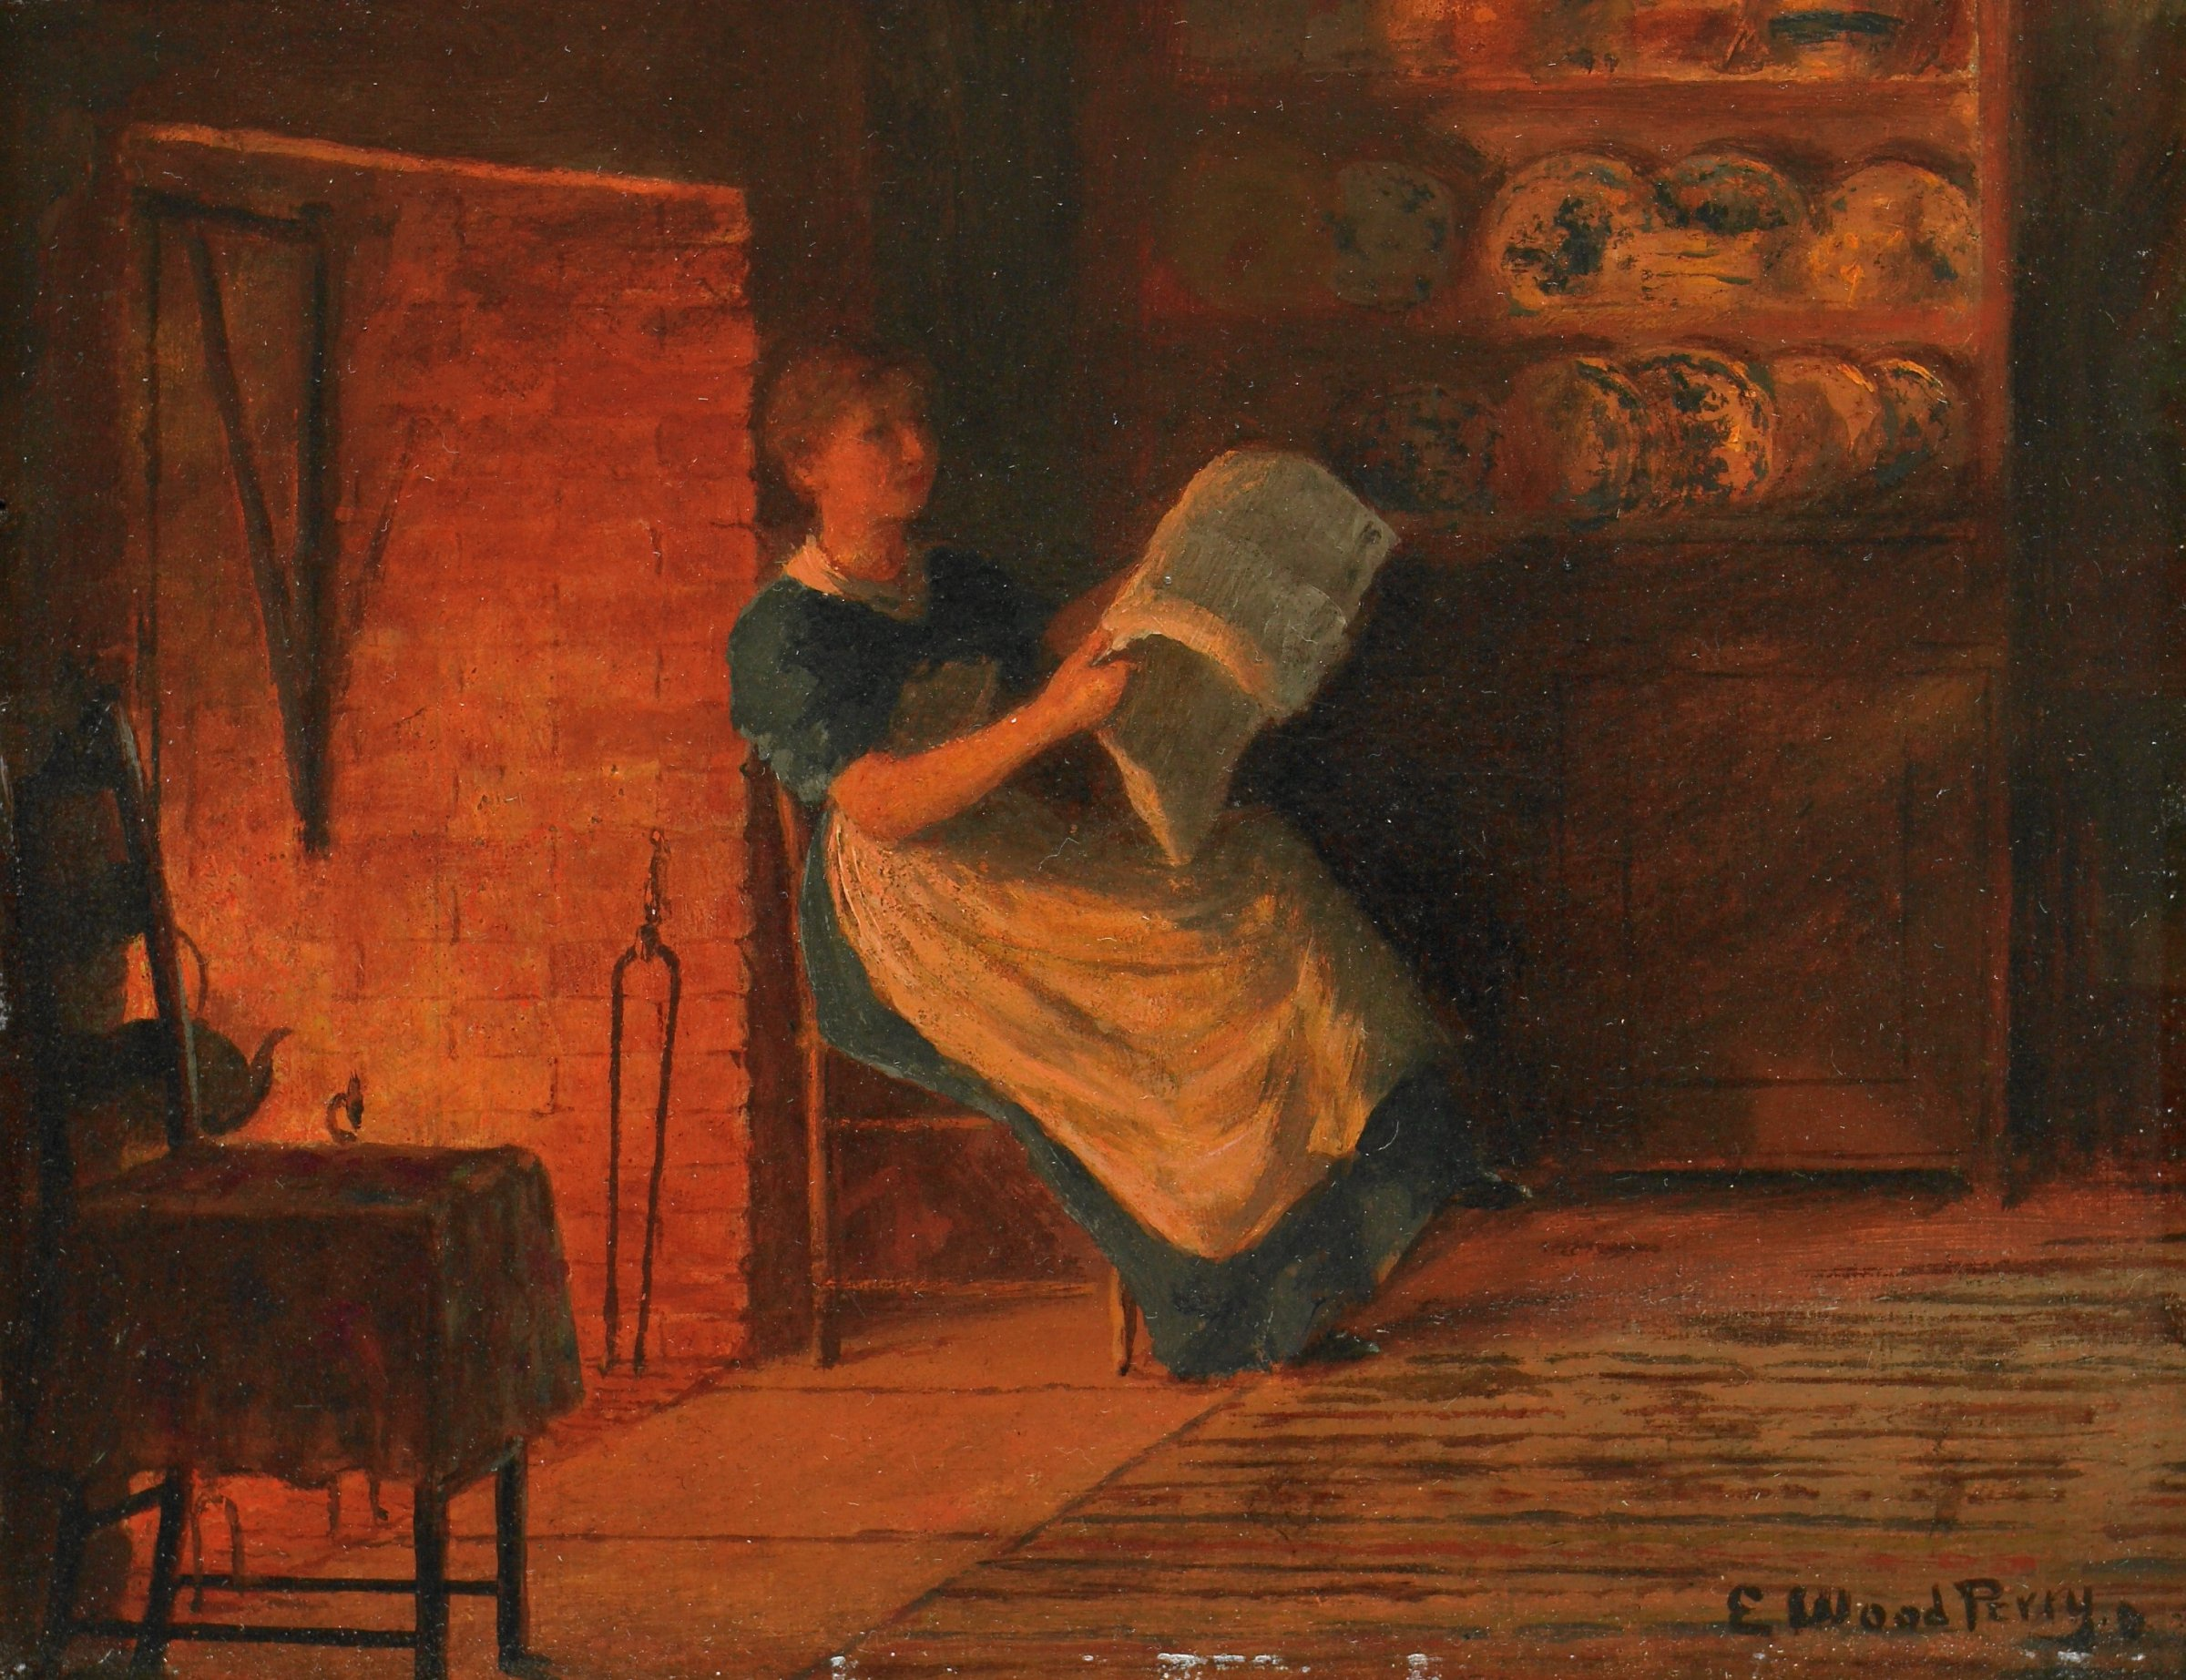 Reading by the Fire, Enoch Wood Perry, oil on canvas